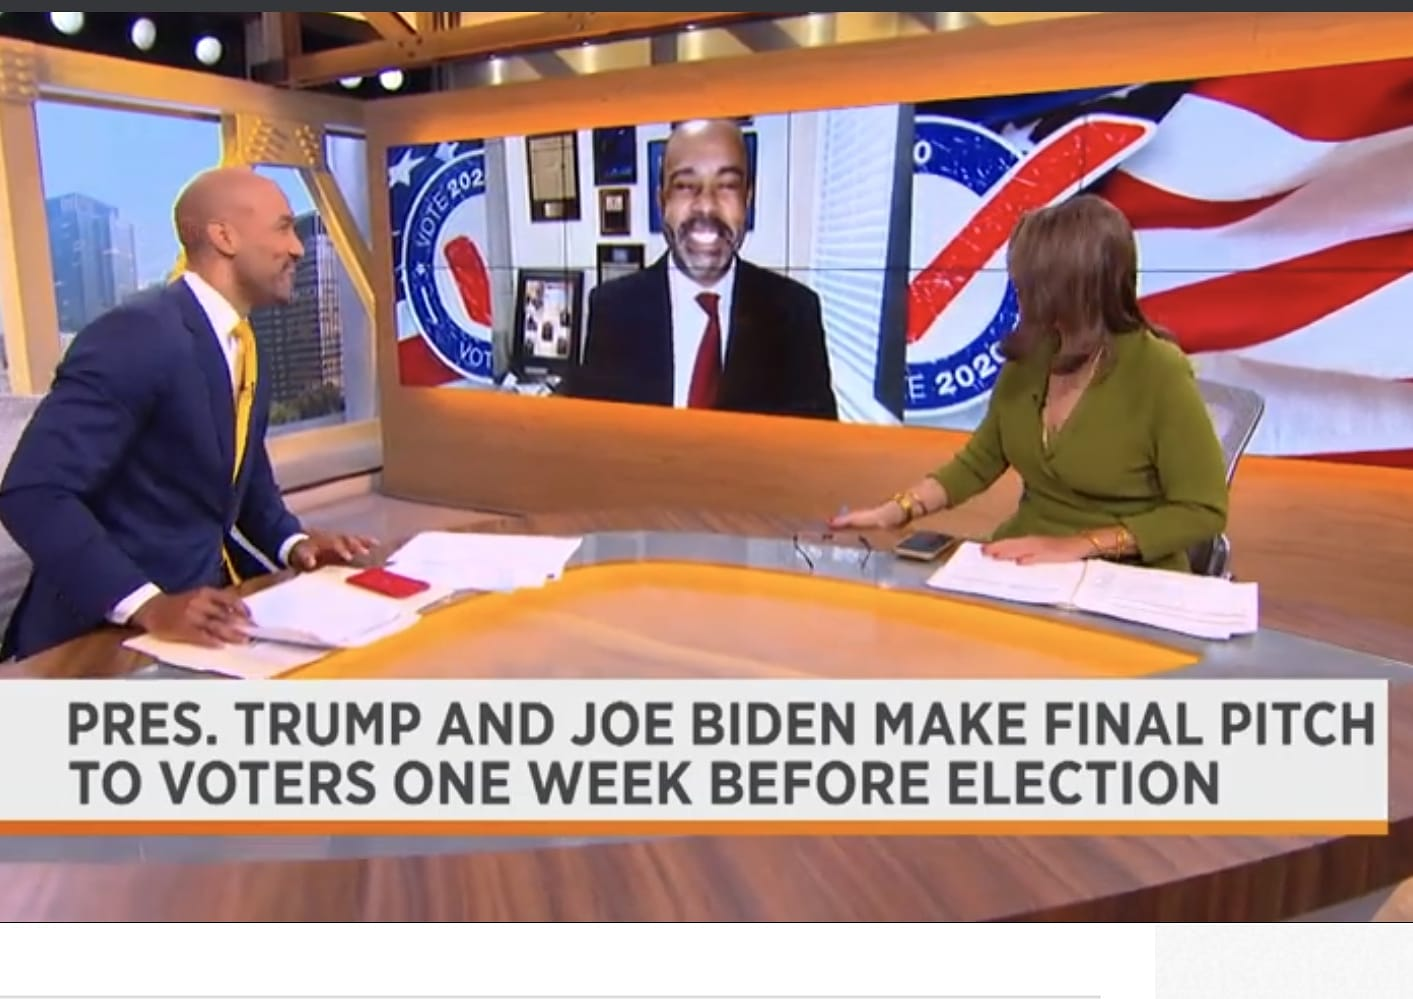 Mo'Kelly on Spectrum News Giving a Pre-Election Race Update (WATCH)